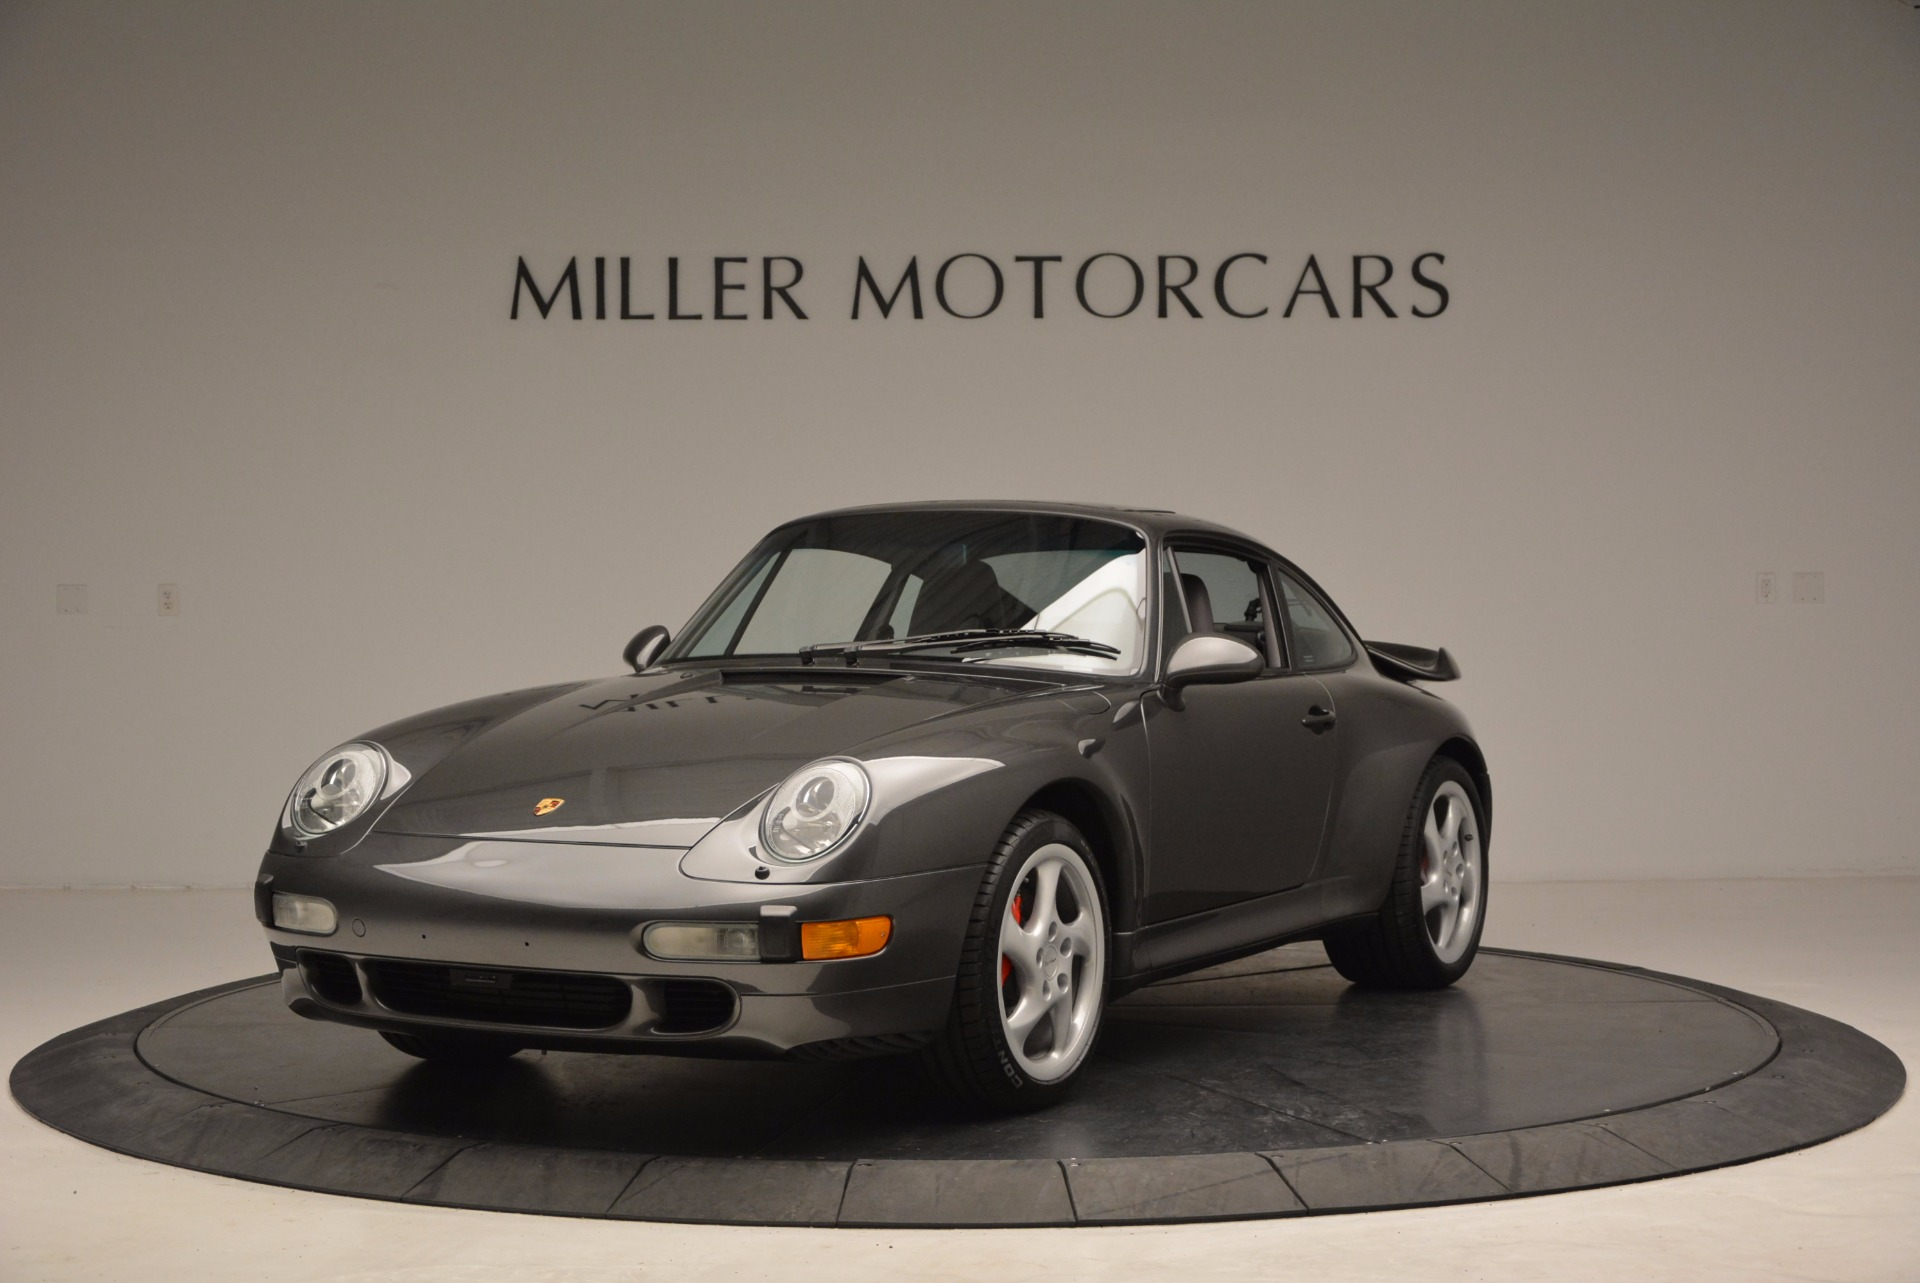 Used 1996 Porsche 911 Turbo for sale Sold at Aston Martin of Greenwich in Greenwich CT 06830 1